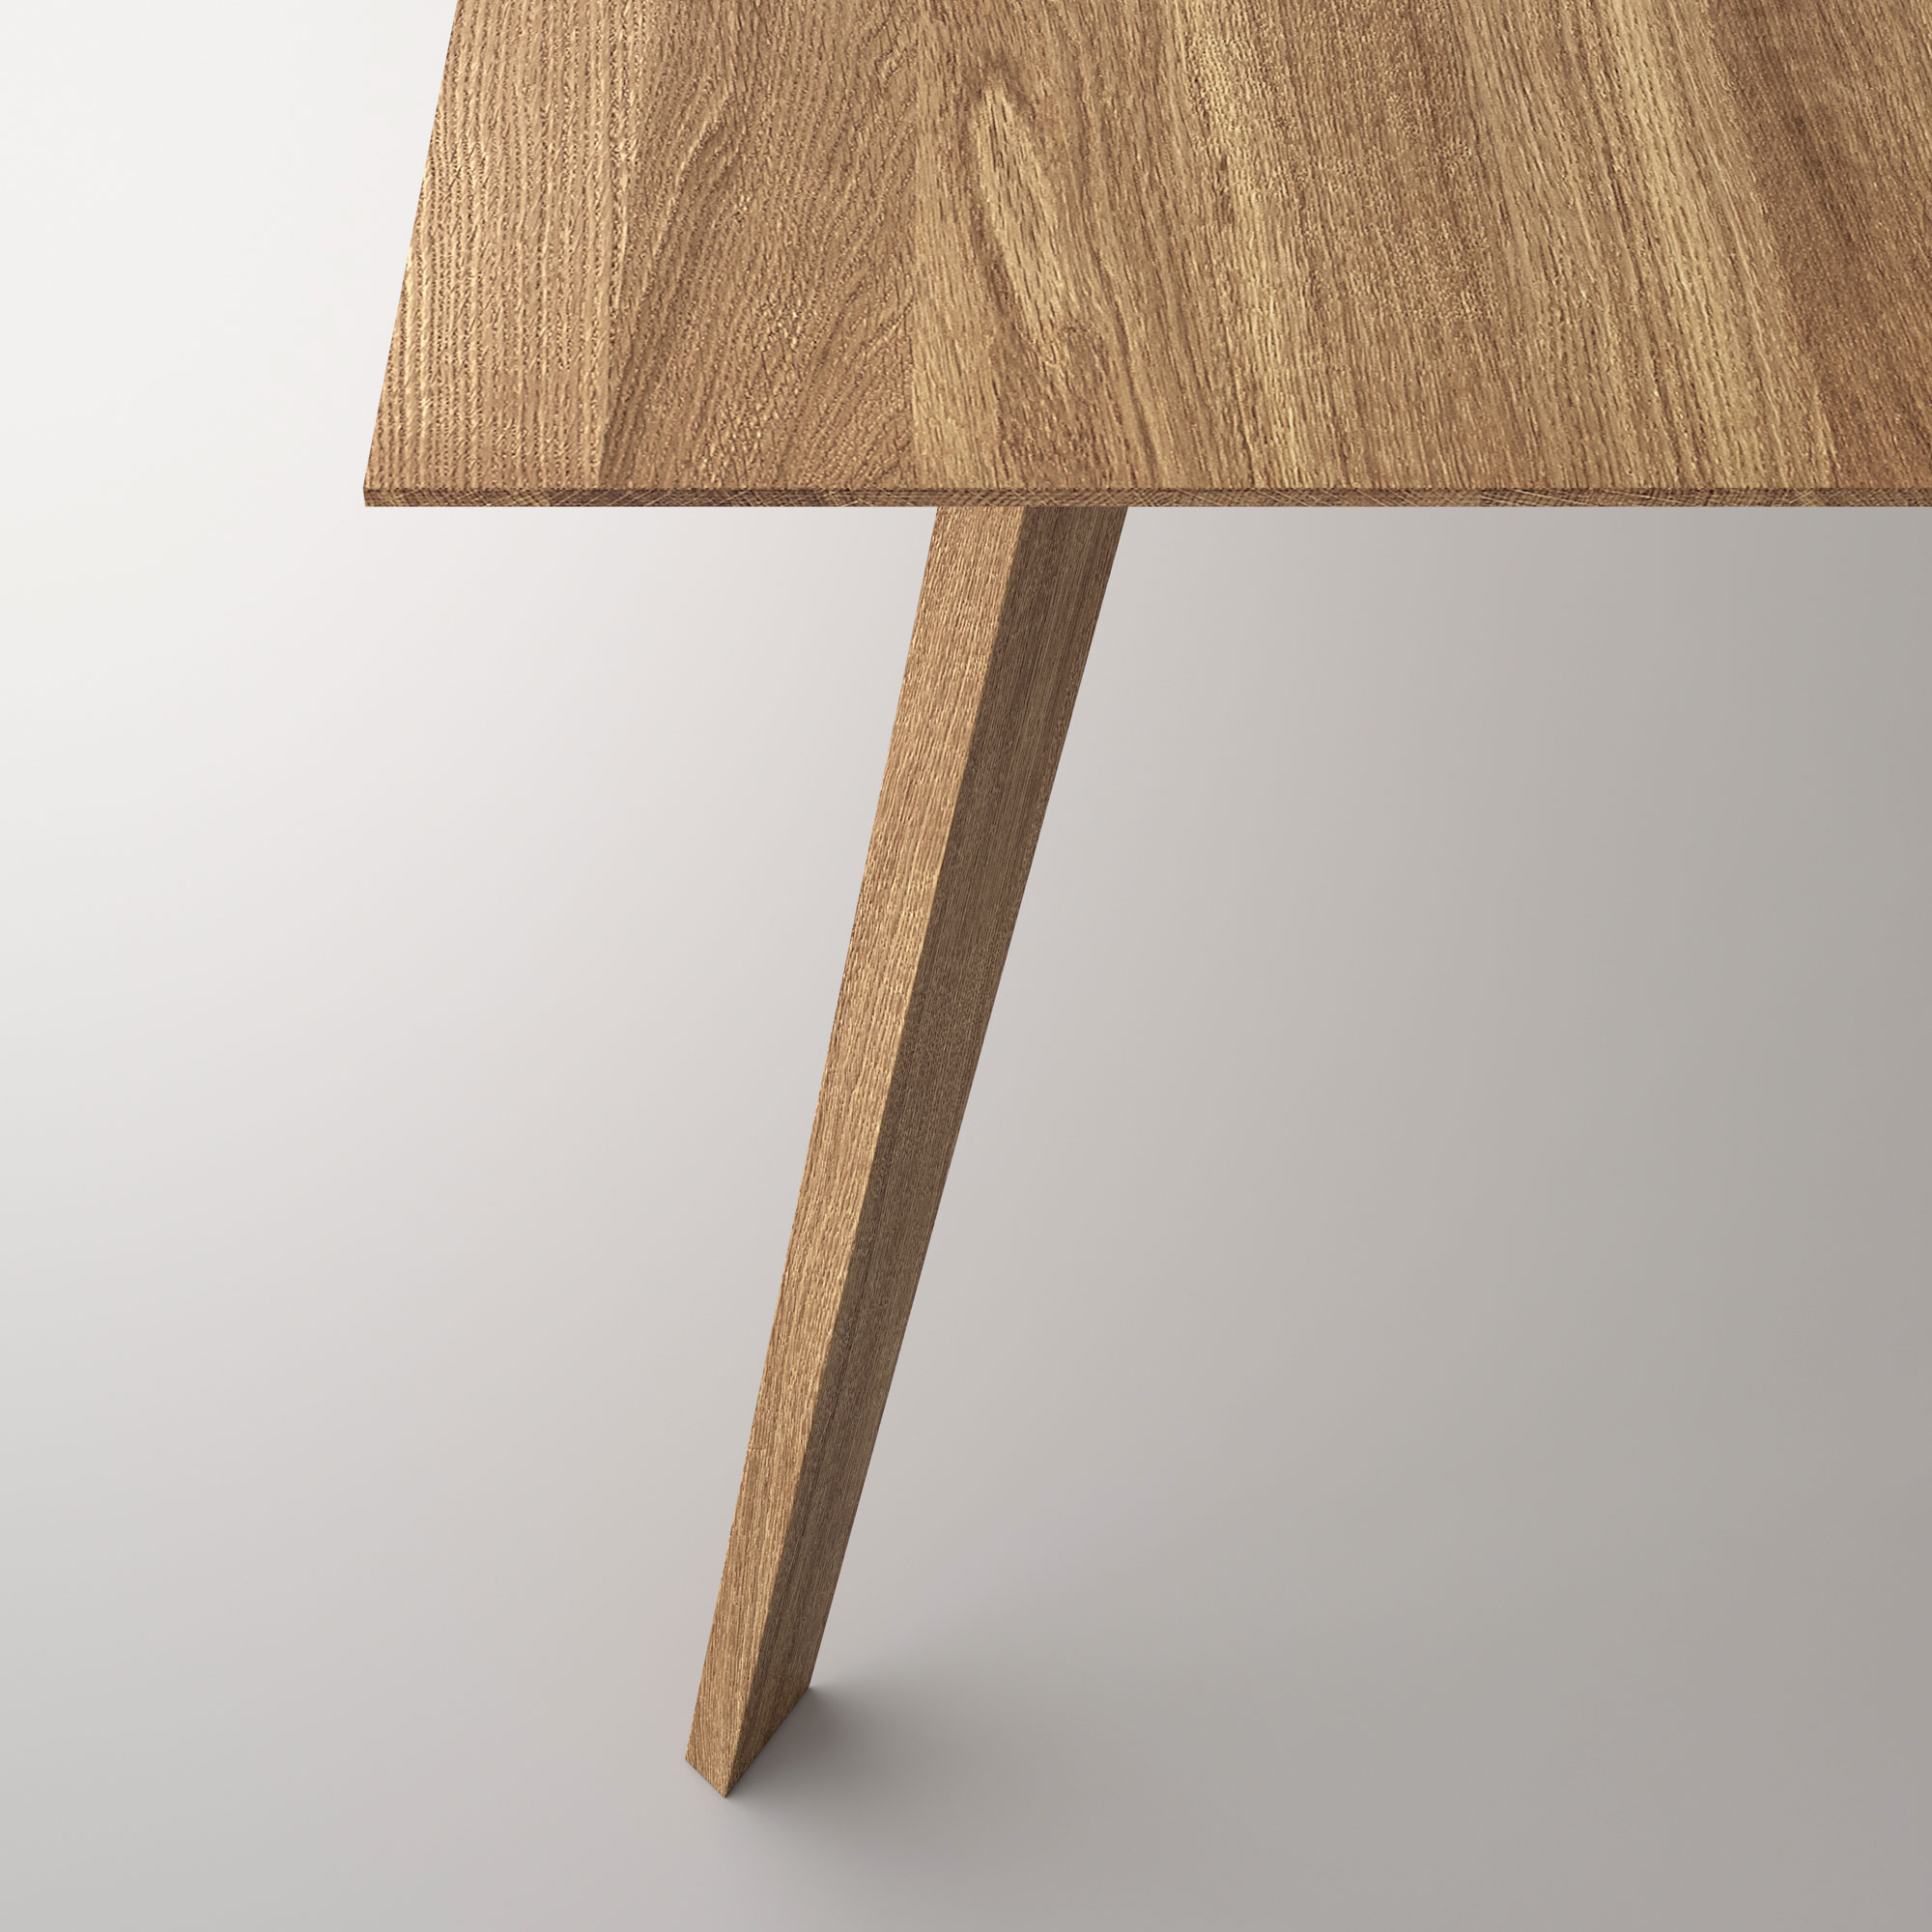 Solid Wood Dining Table CITIUS Cam4 custom made in solid wood by vitamin design